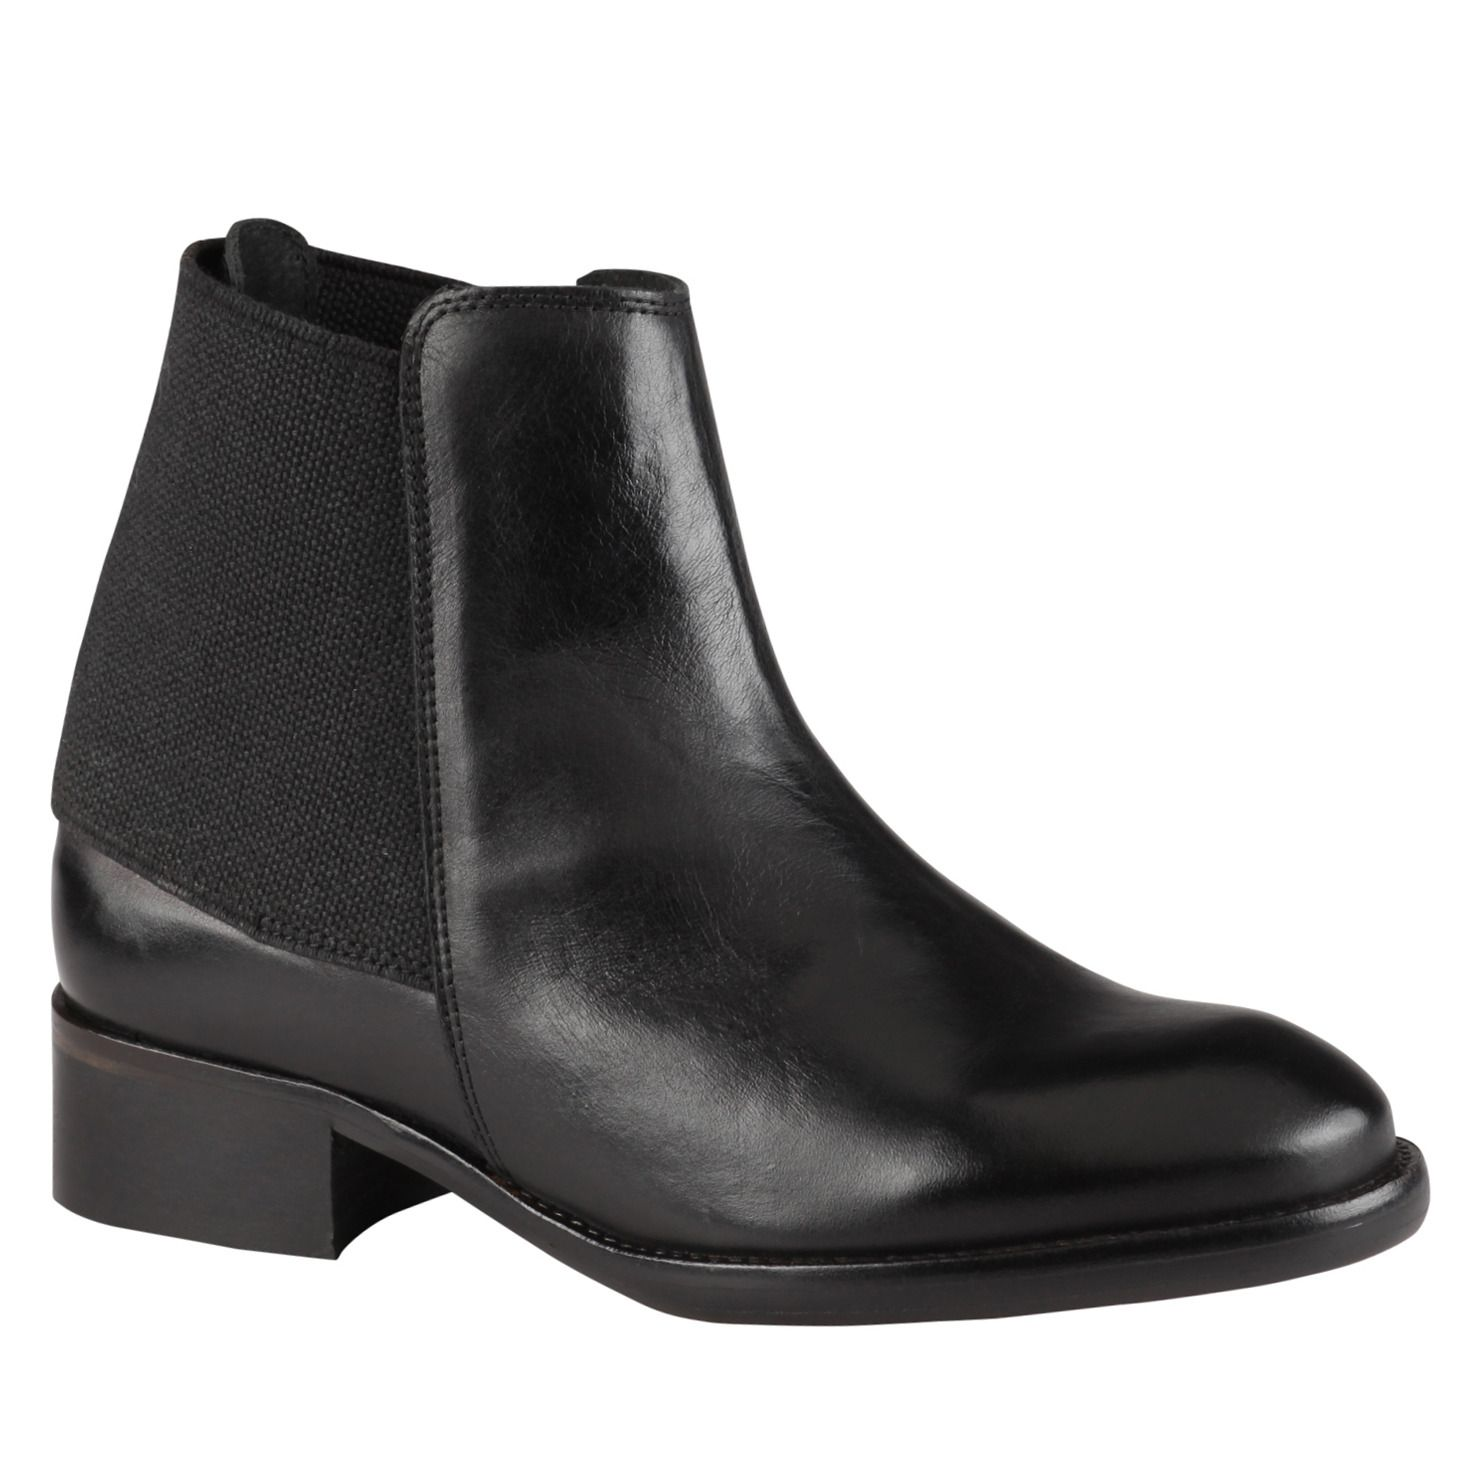 ALDO Shoes. | Boots, Womens ankle boots